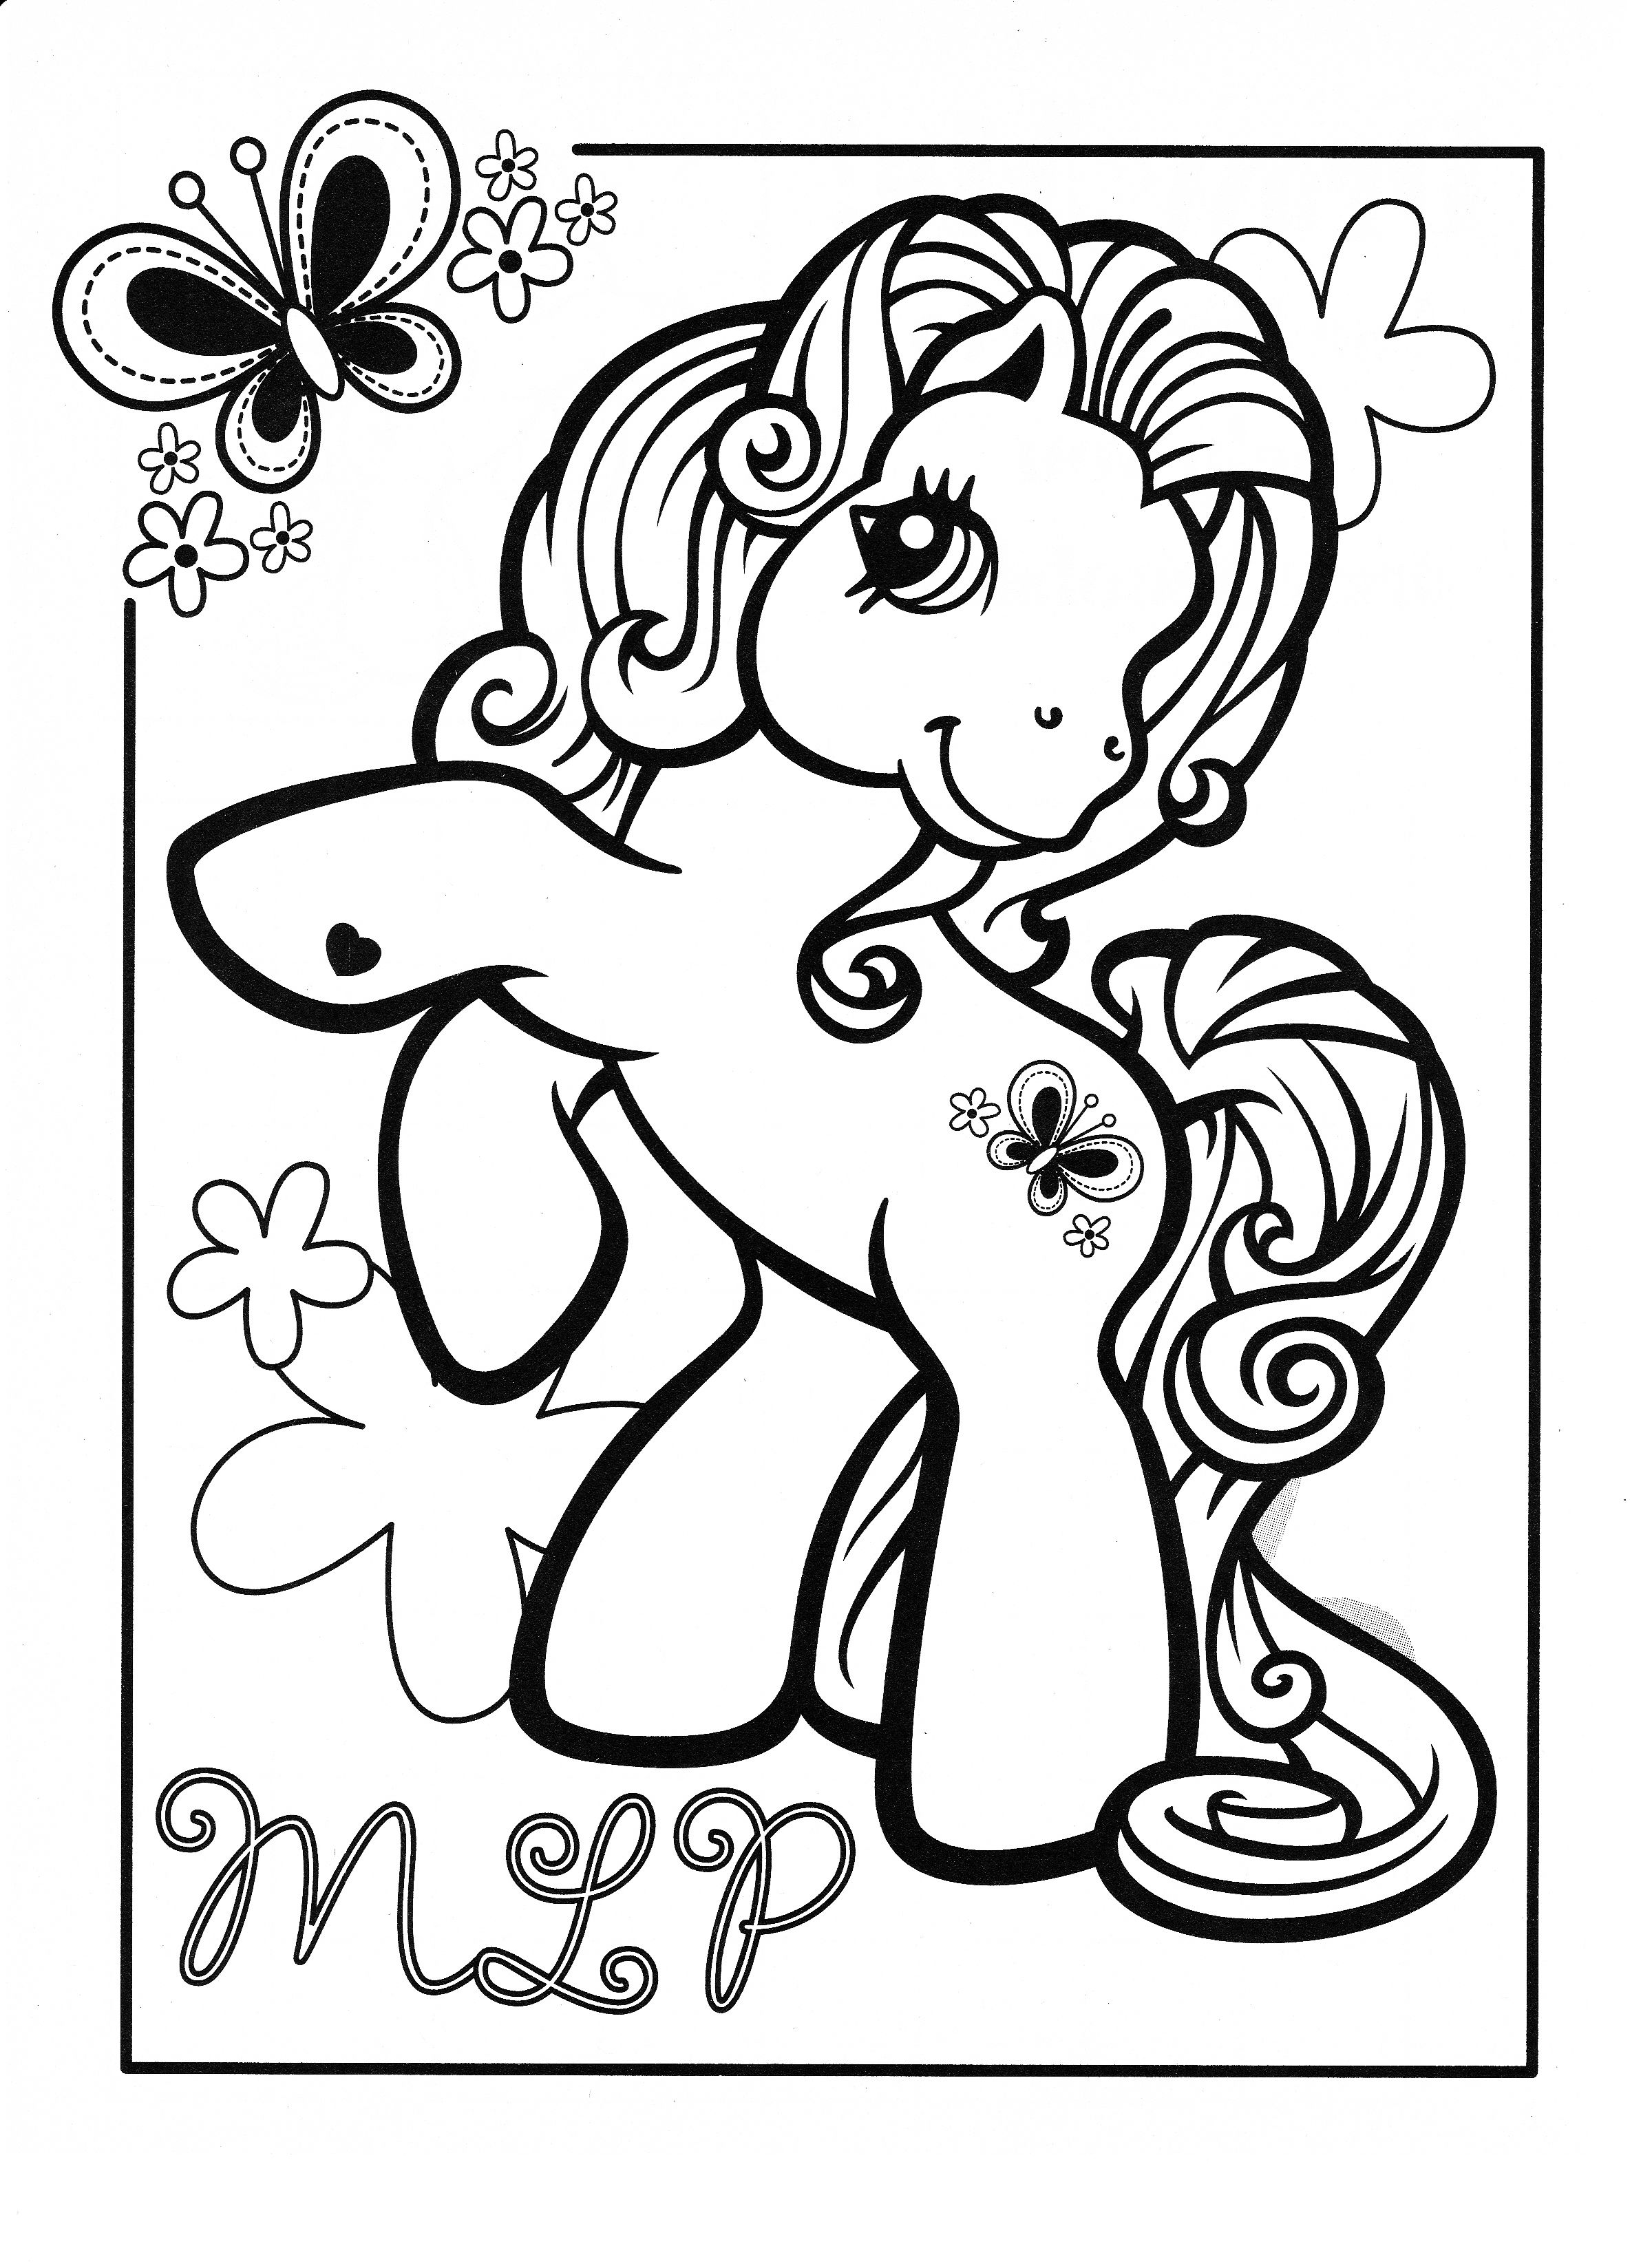 Vintage my little pony coloring pages - My Little Pony Coloring Page